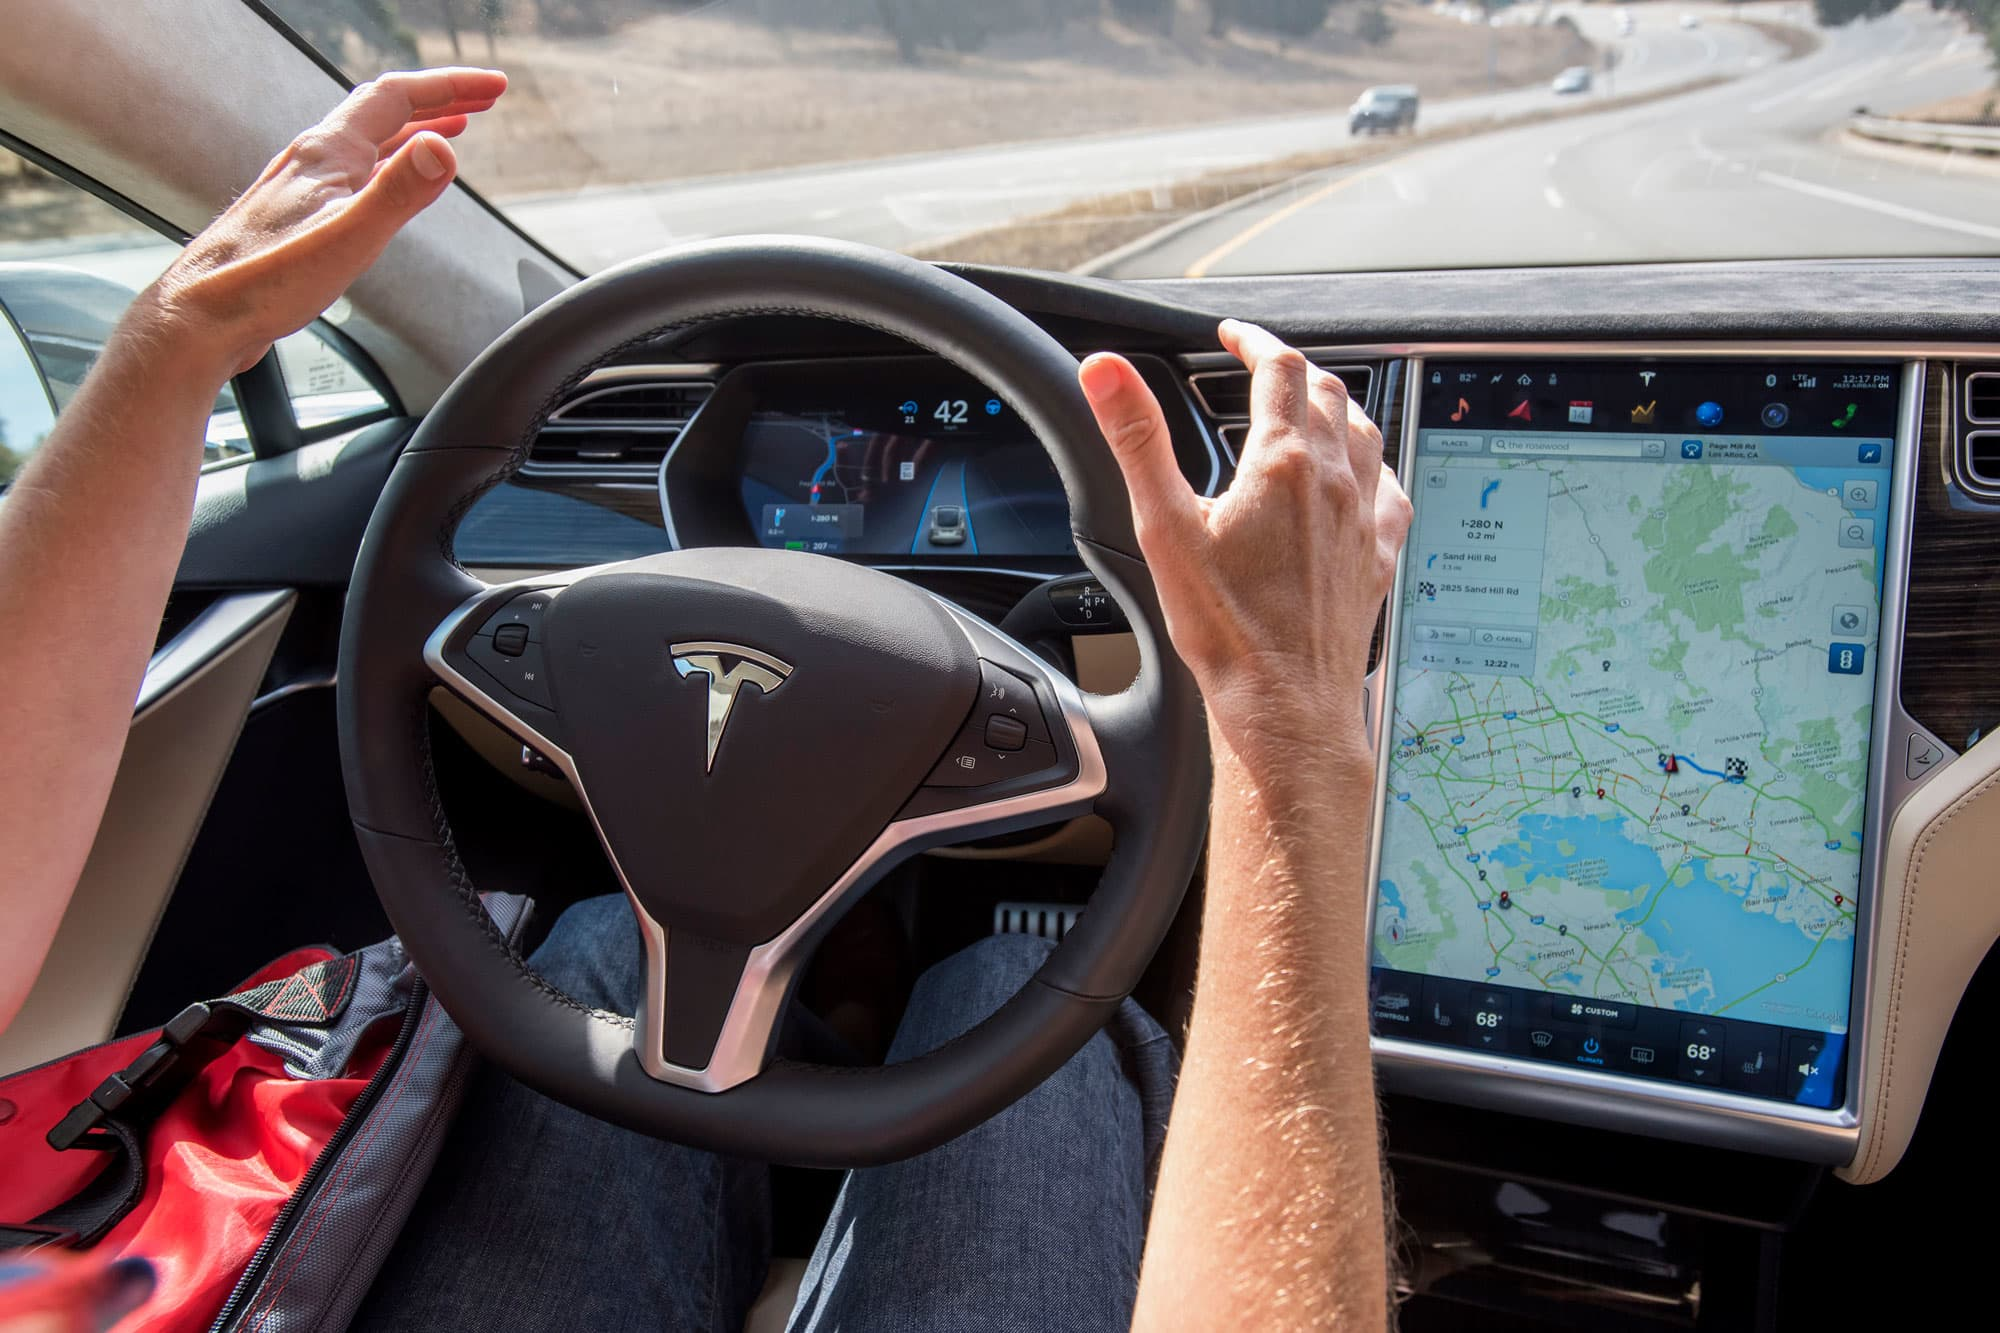 A federal agency warns Tesla tests unfinished driverless tech on its users